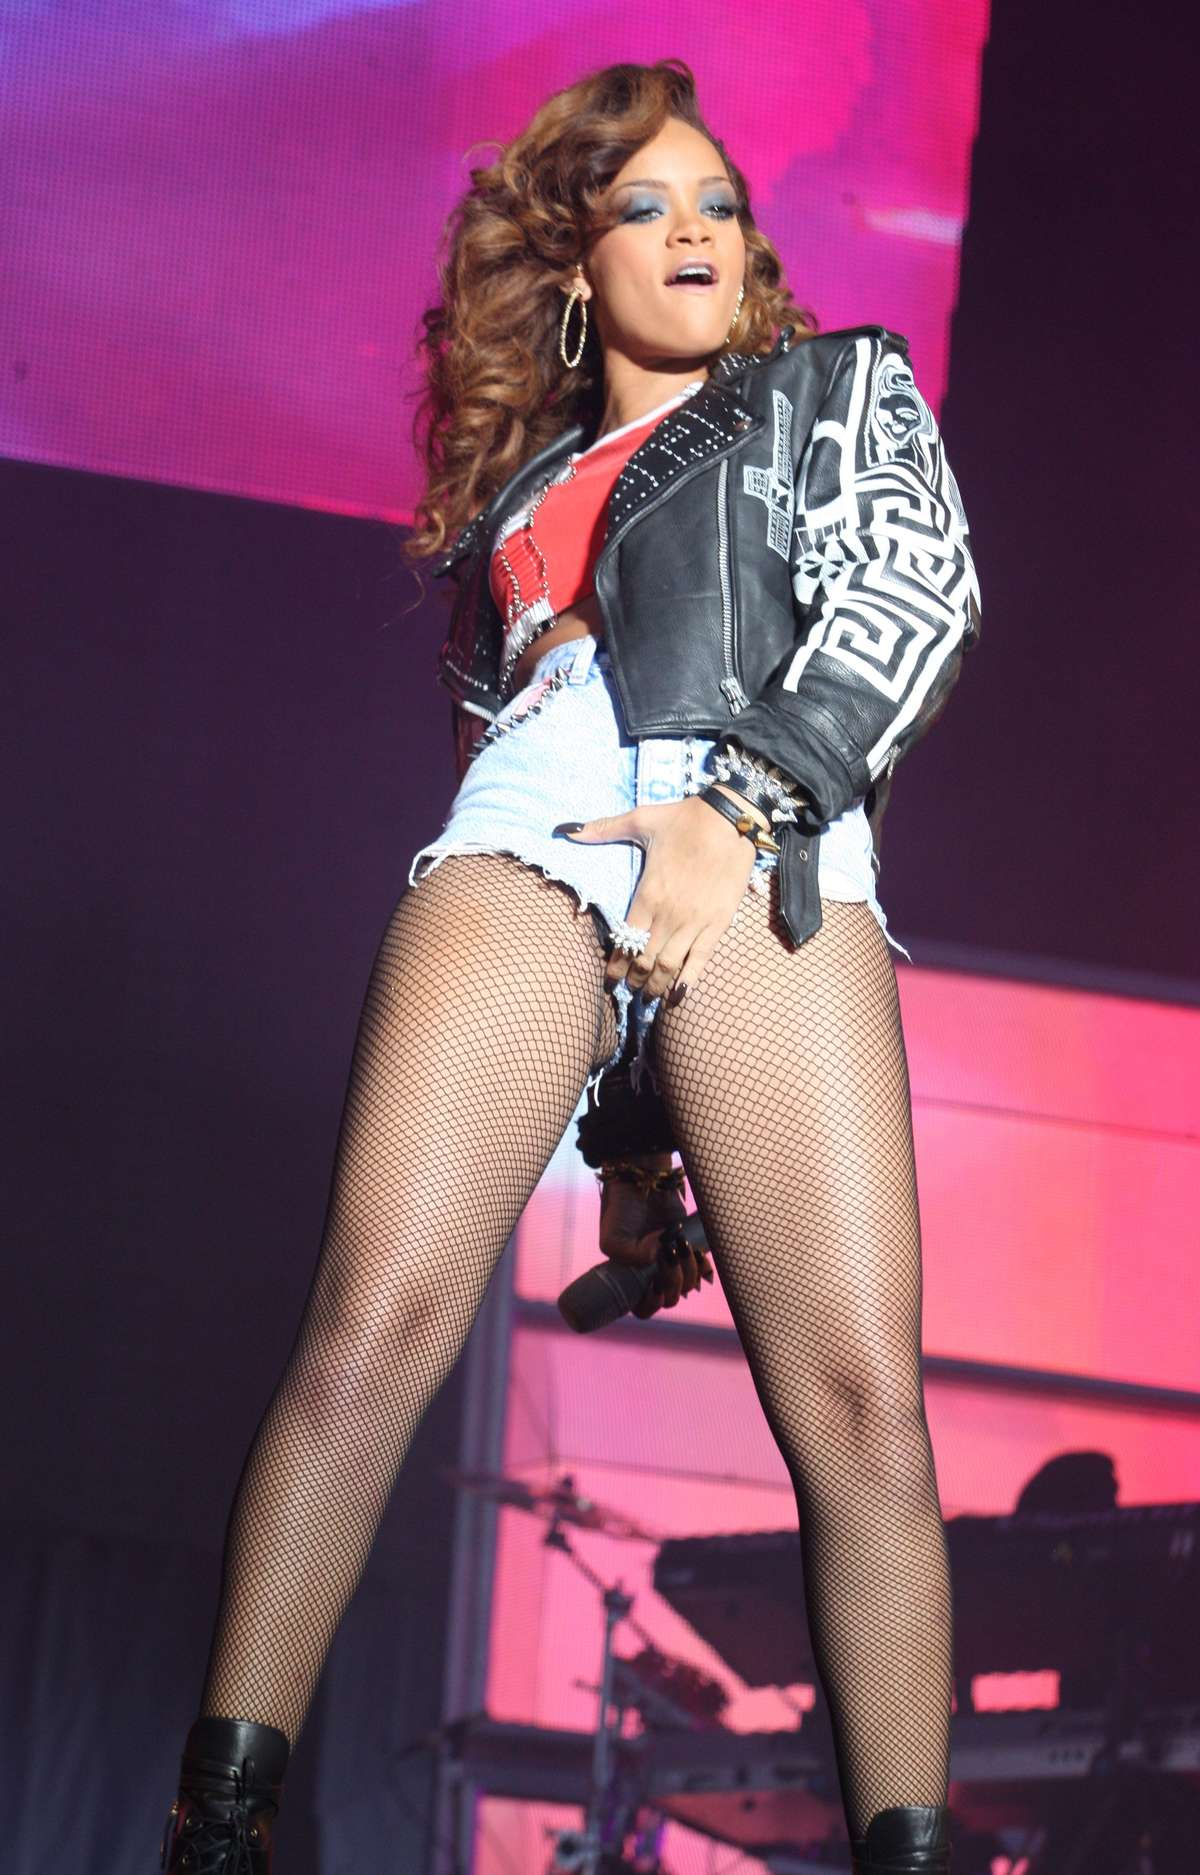 Rihanna – Concert Pics From V Festival 2011 in Weston Park